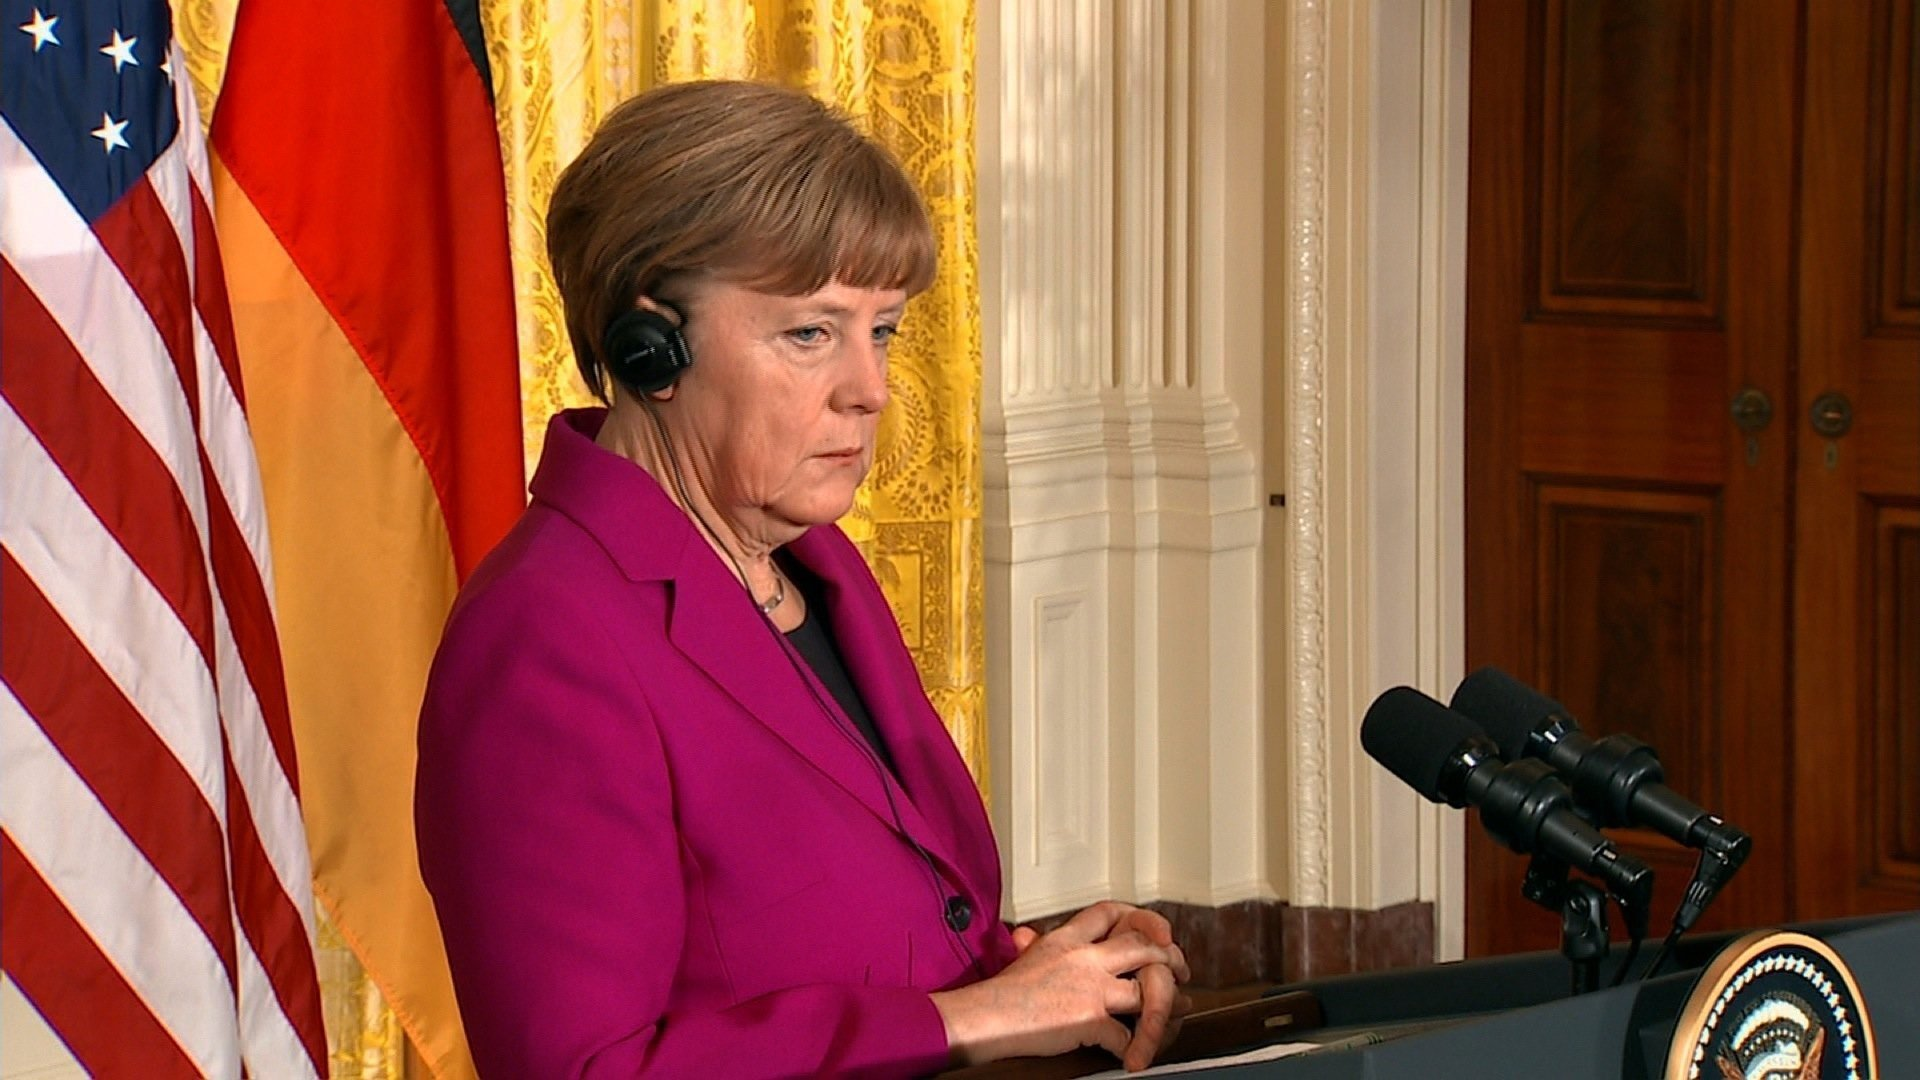 What next for Germany as Merkel myth implodes? - KBZK com